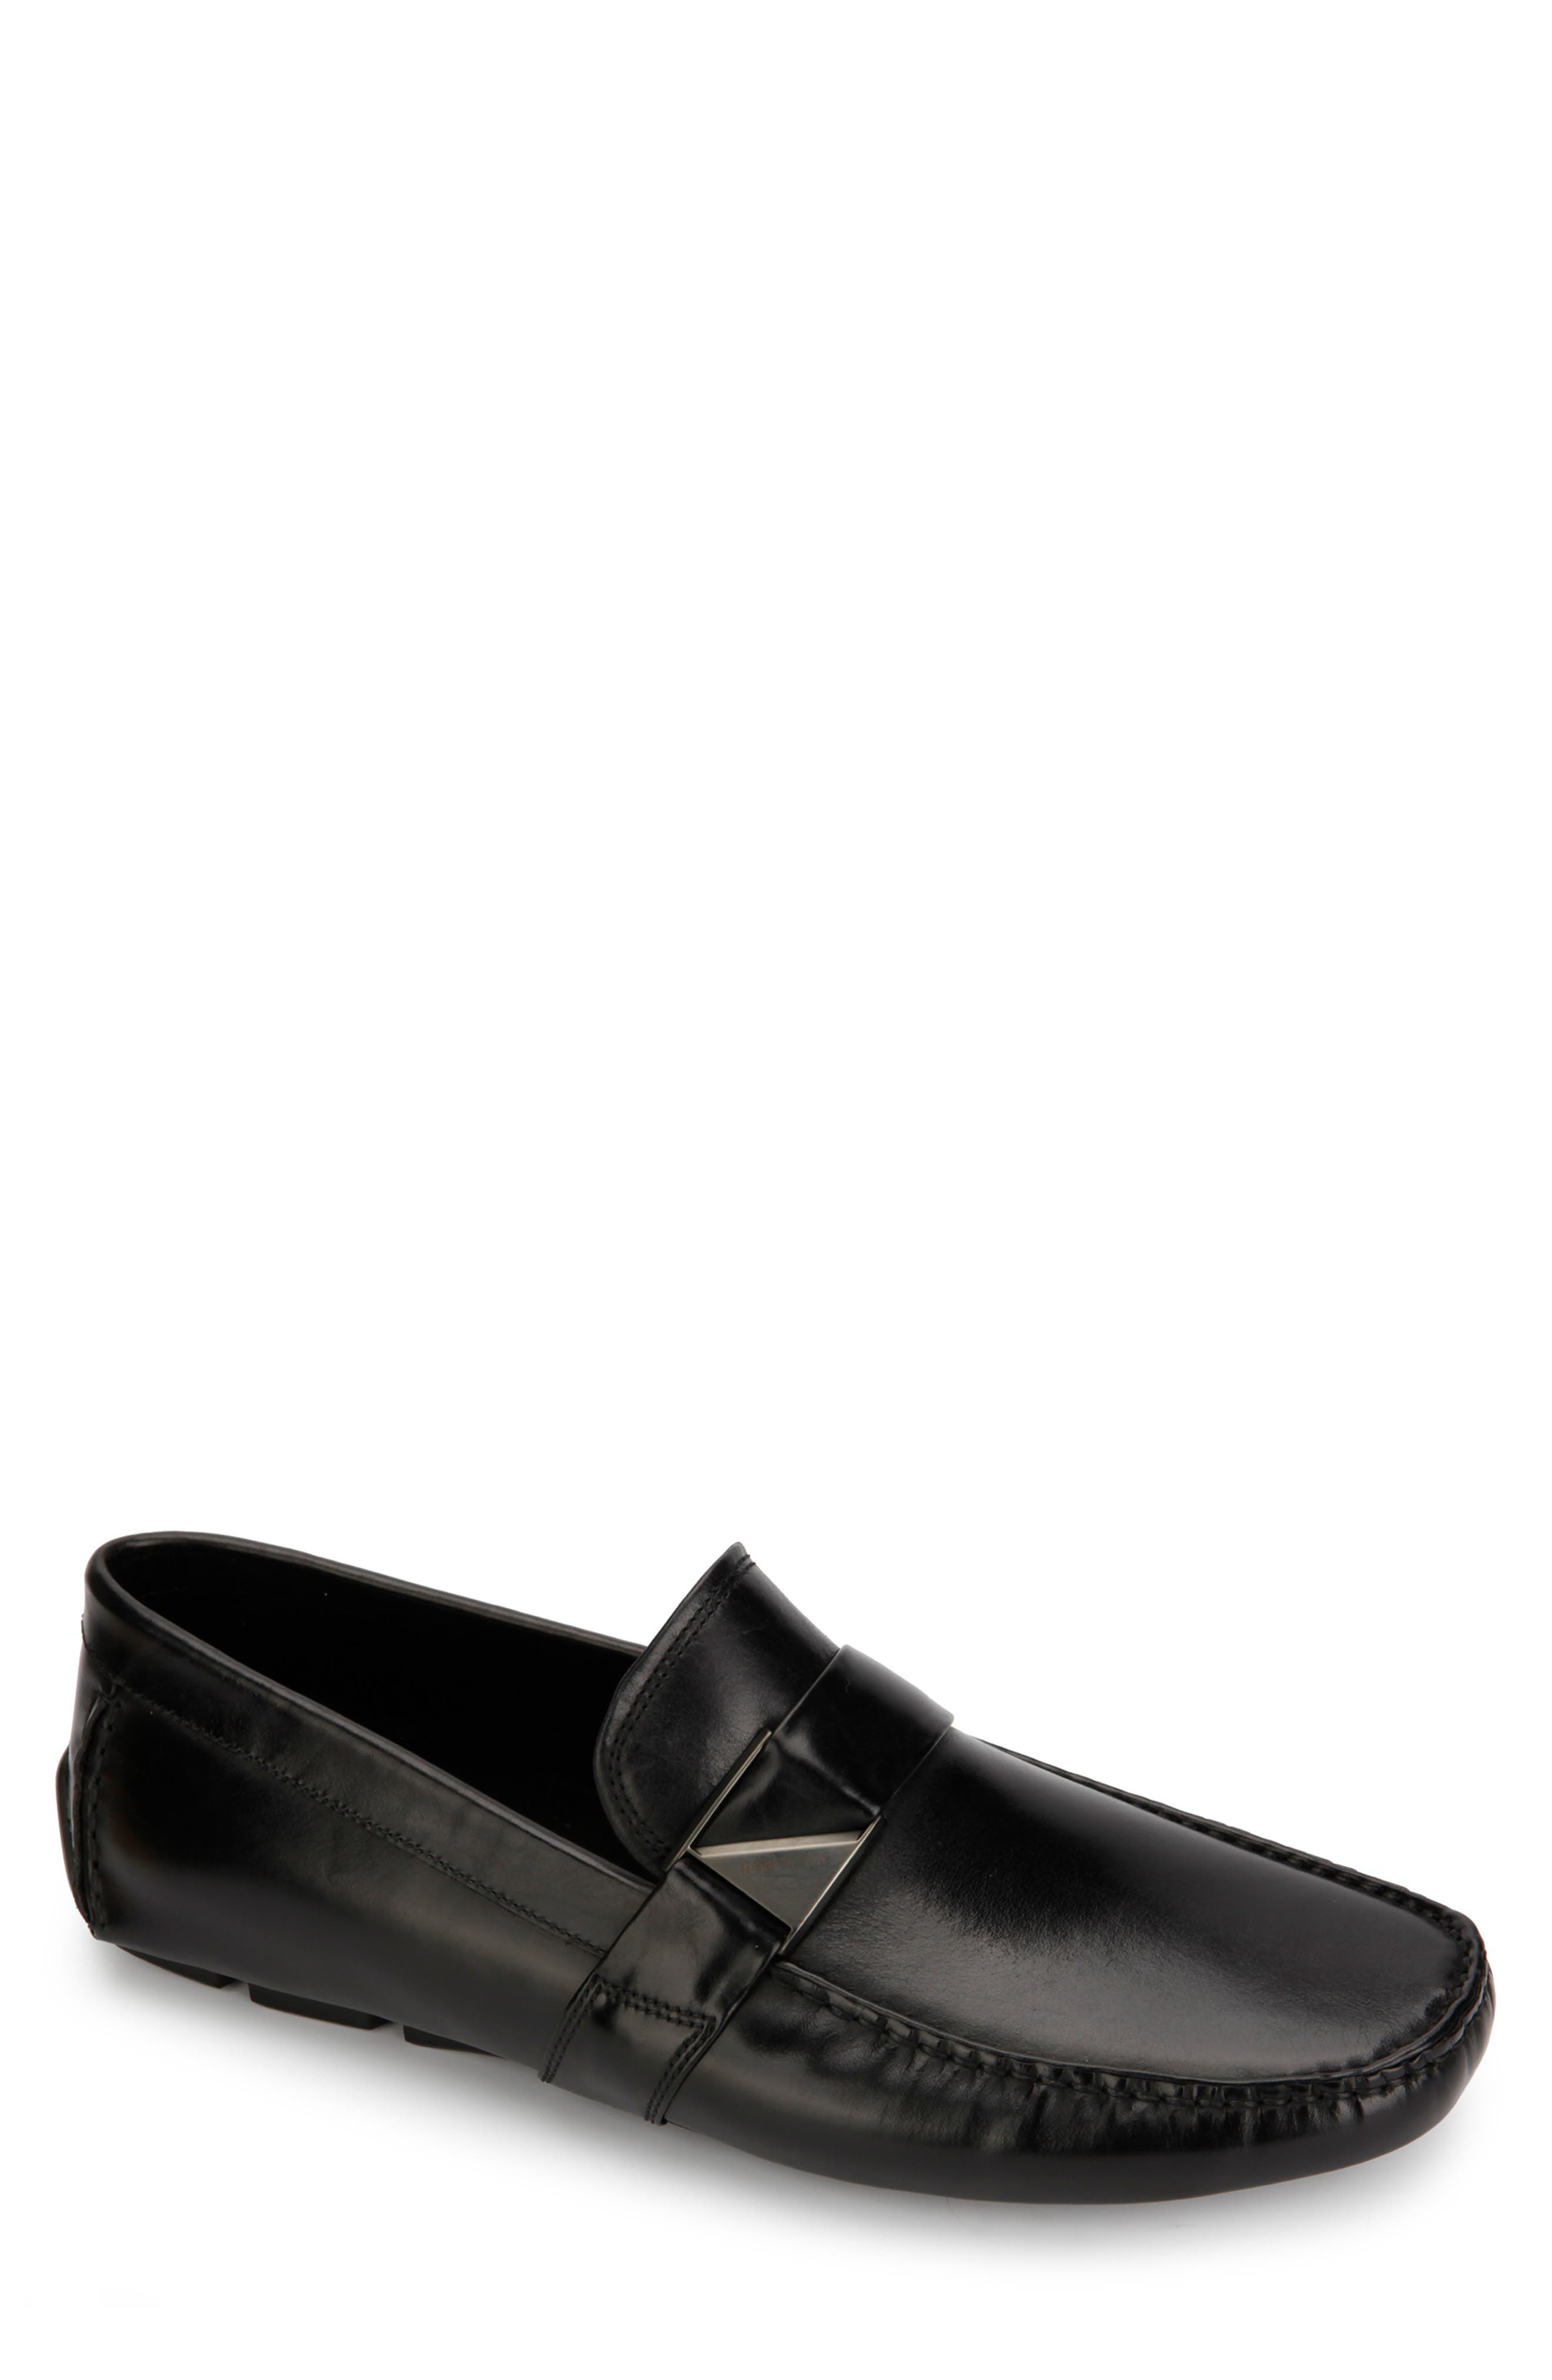 KENNETH COLE NEW YORK,                             Theme Driving Shoe,                             Main thumbnail 1, color,                             BLACK LEATHER